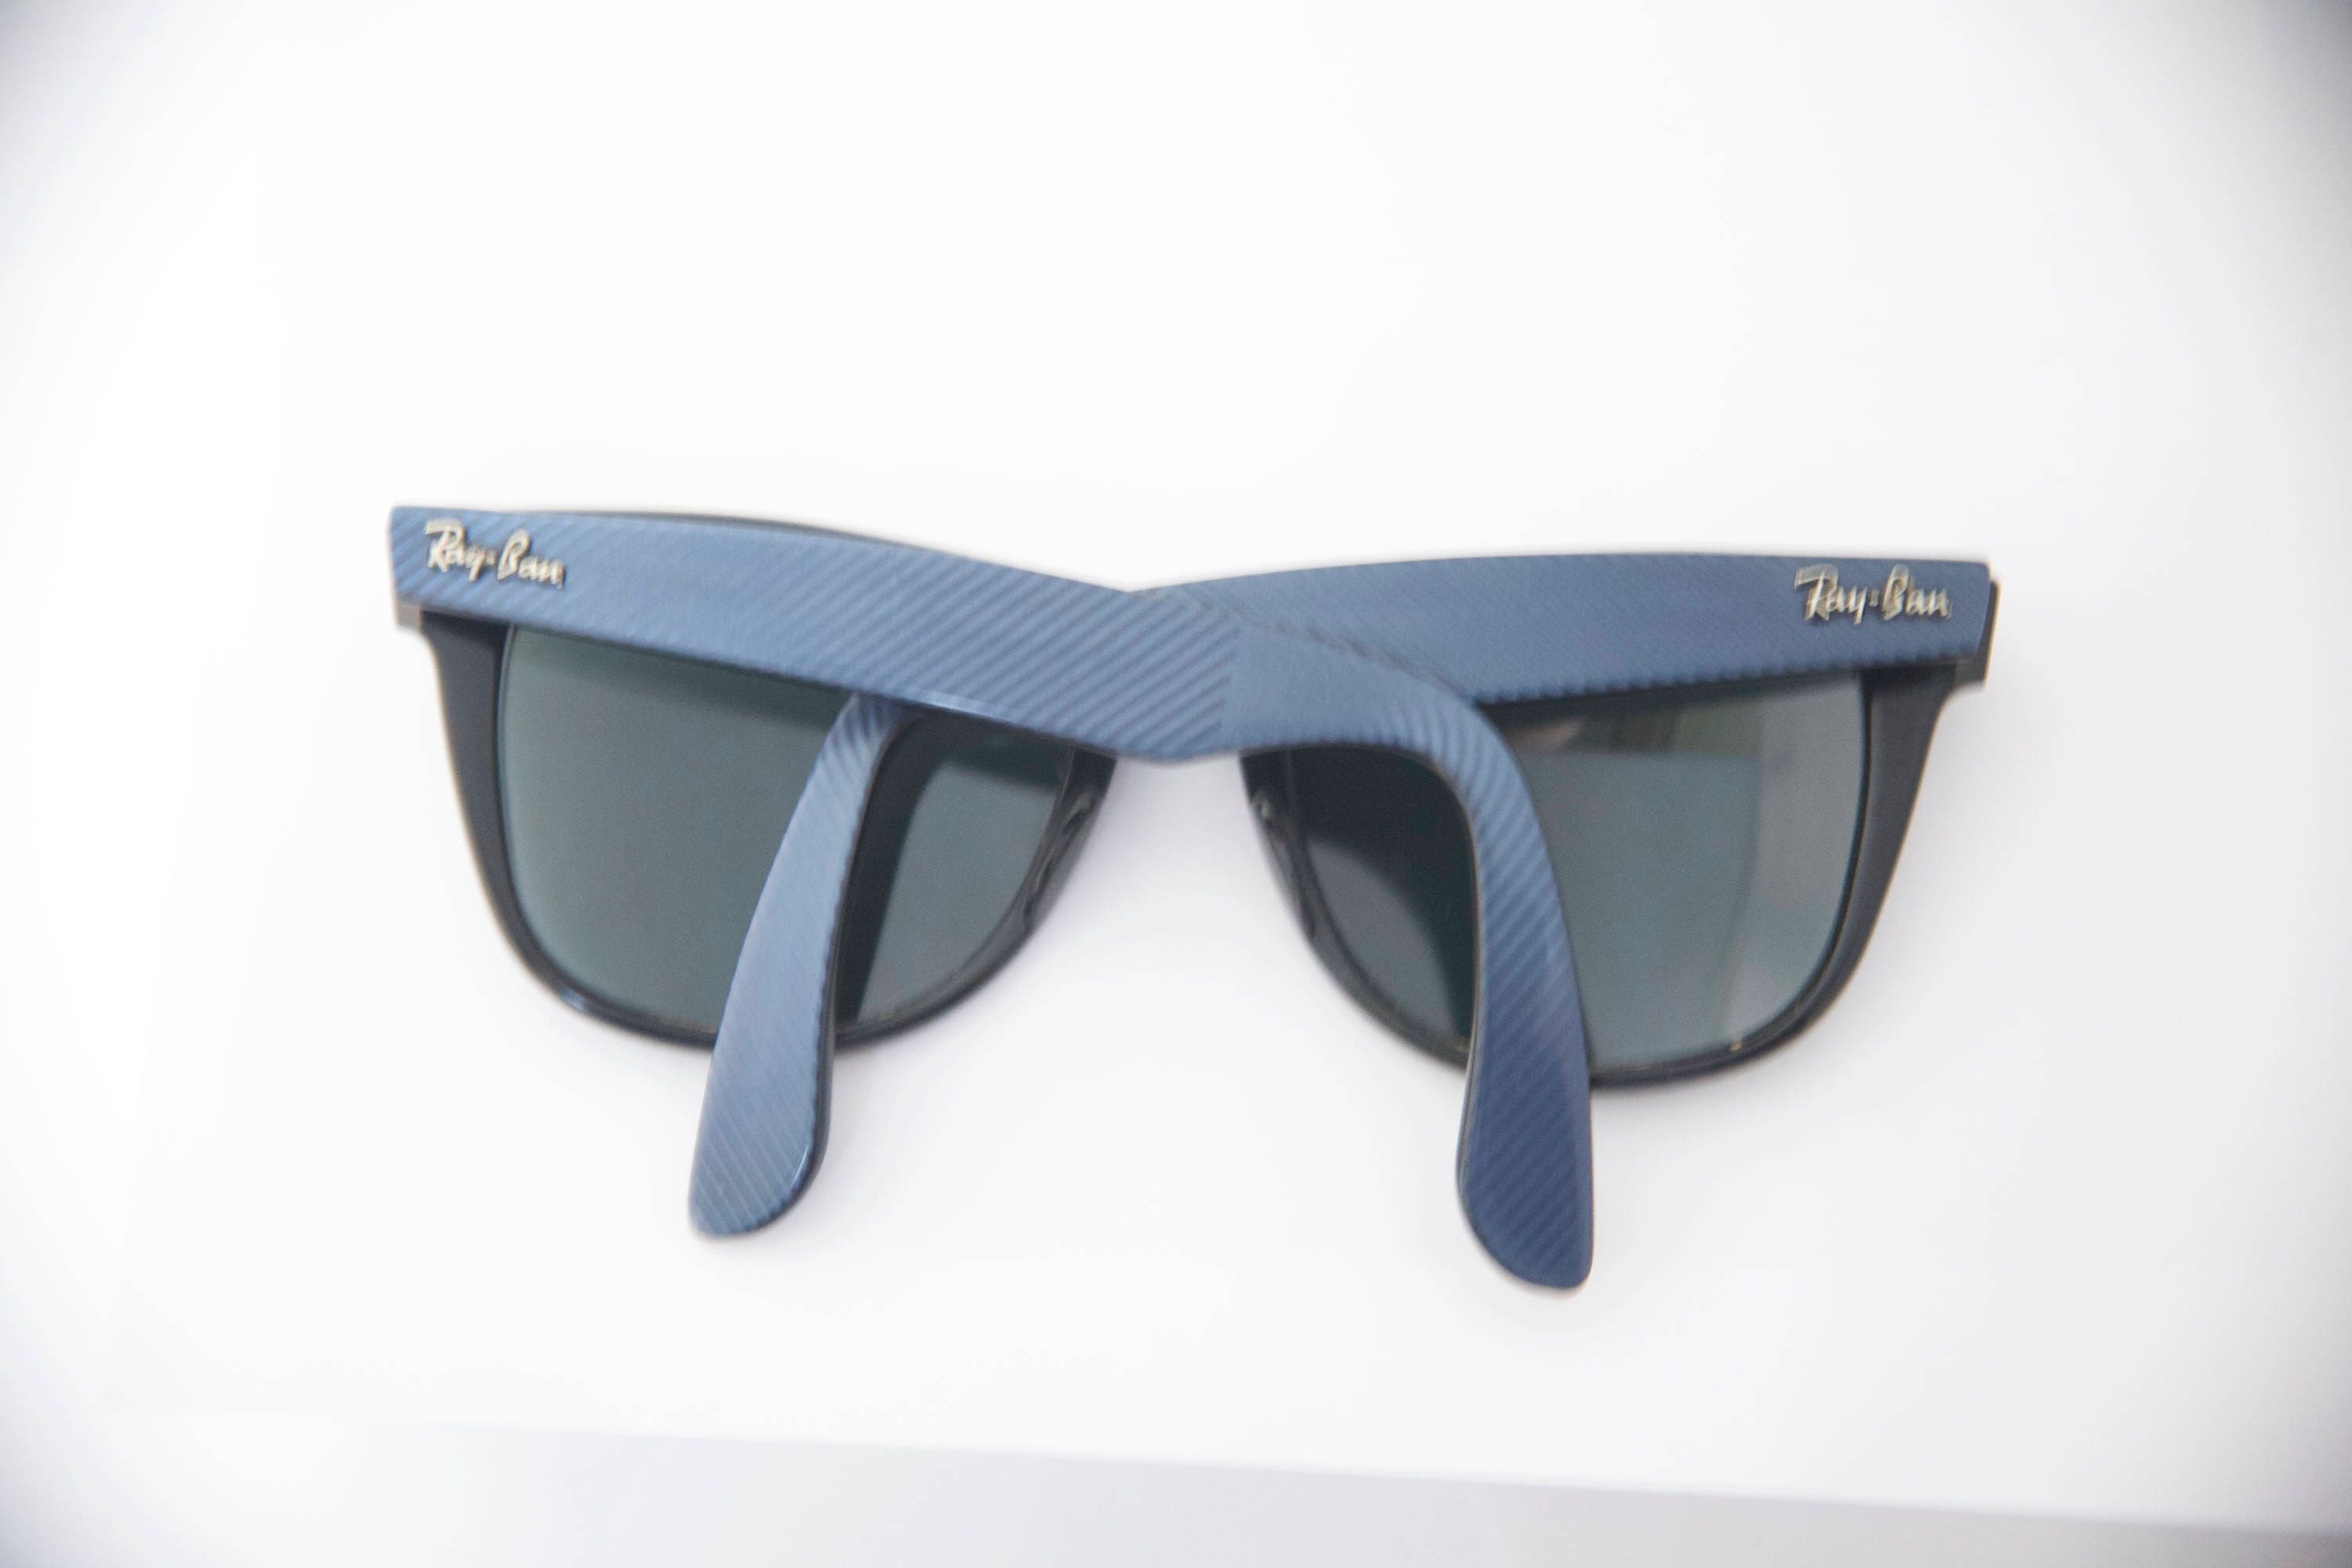 Ray Ban Wayfarer 2 Sunglasses Frames / Made inUSA / Mosaic Blue / rx ...